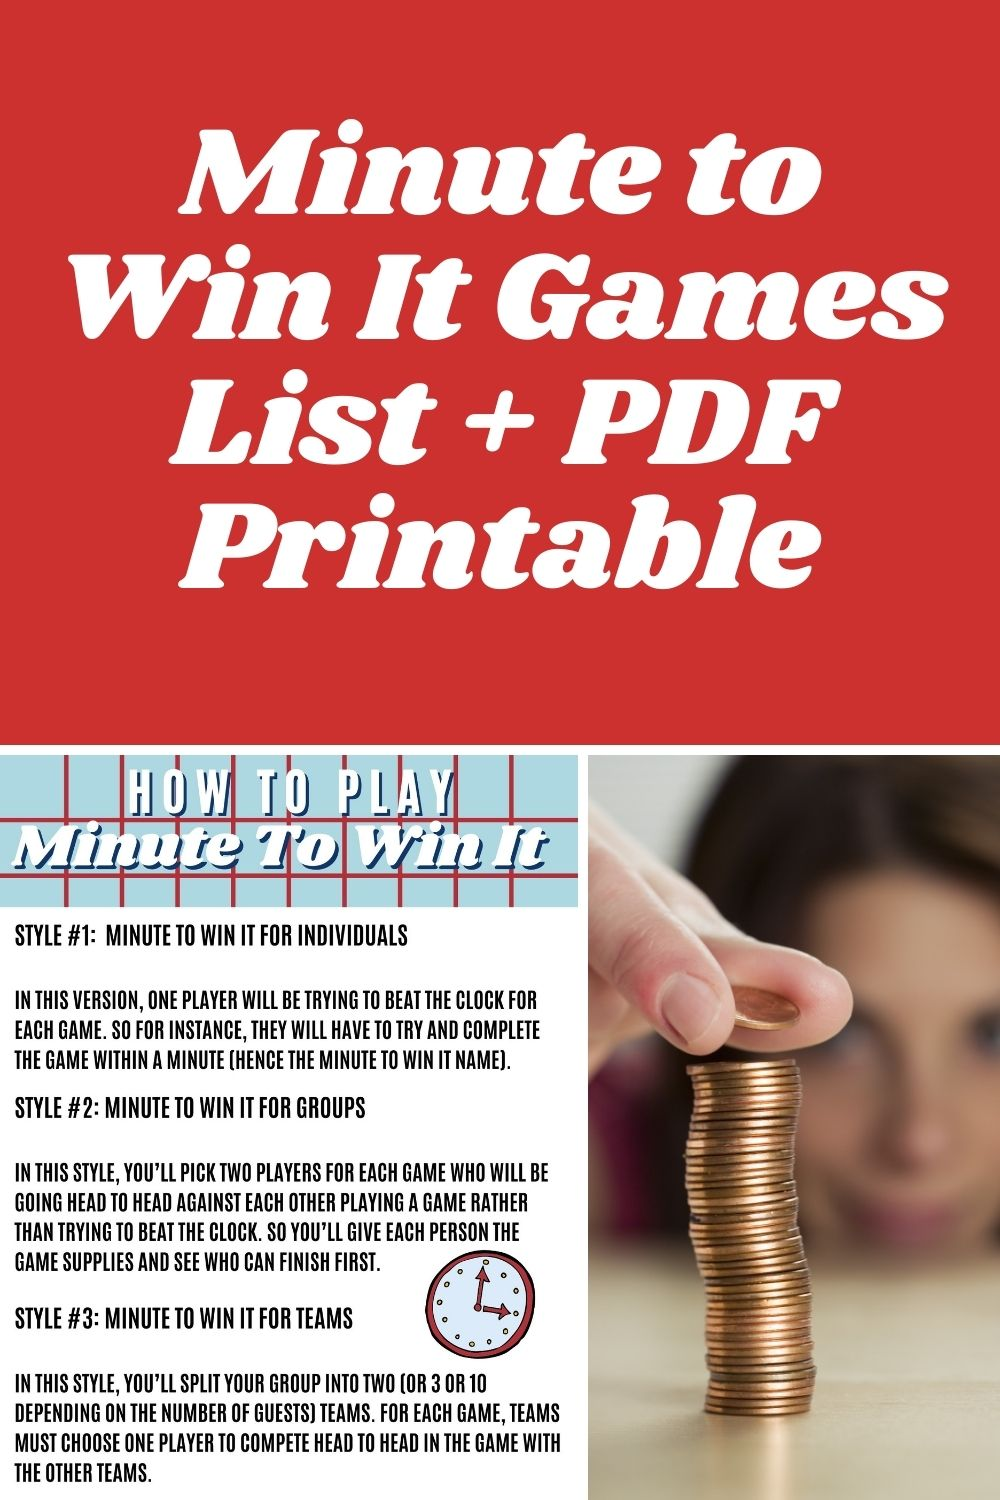 Minute To Win It Printable Games List